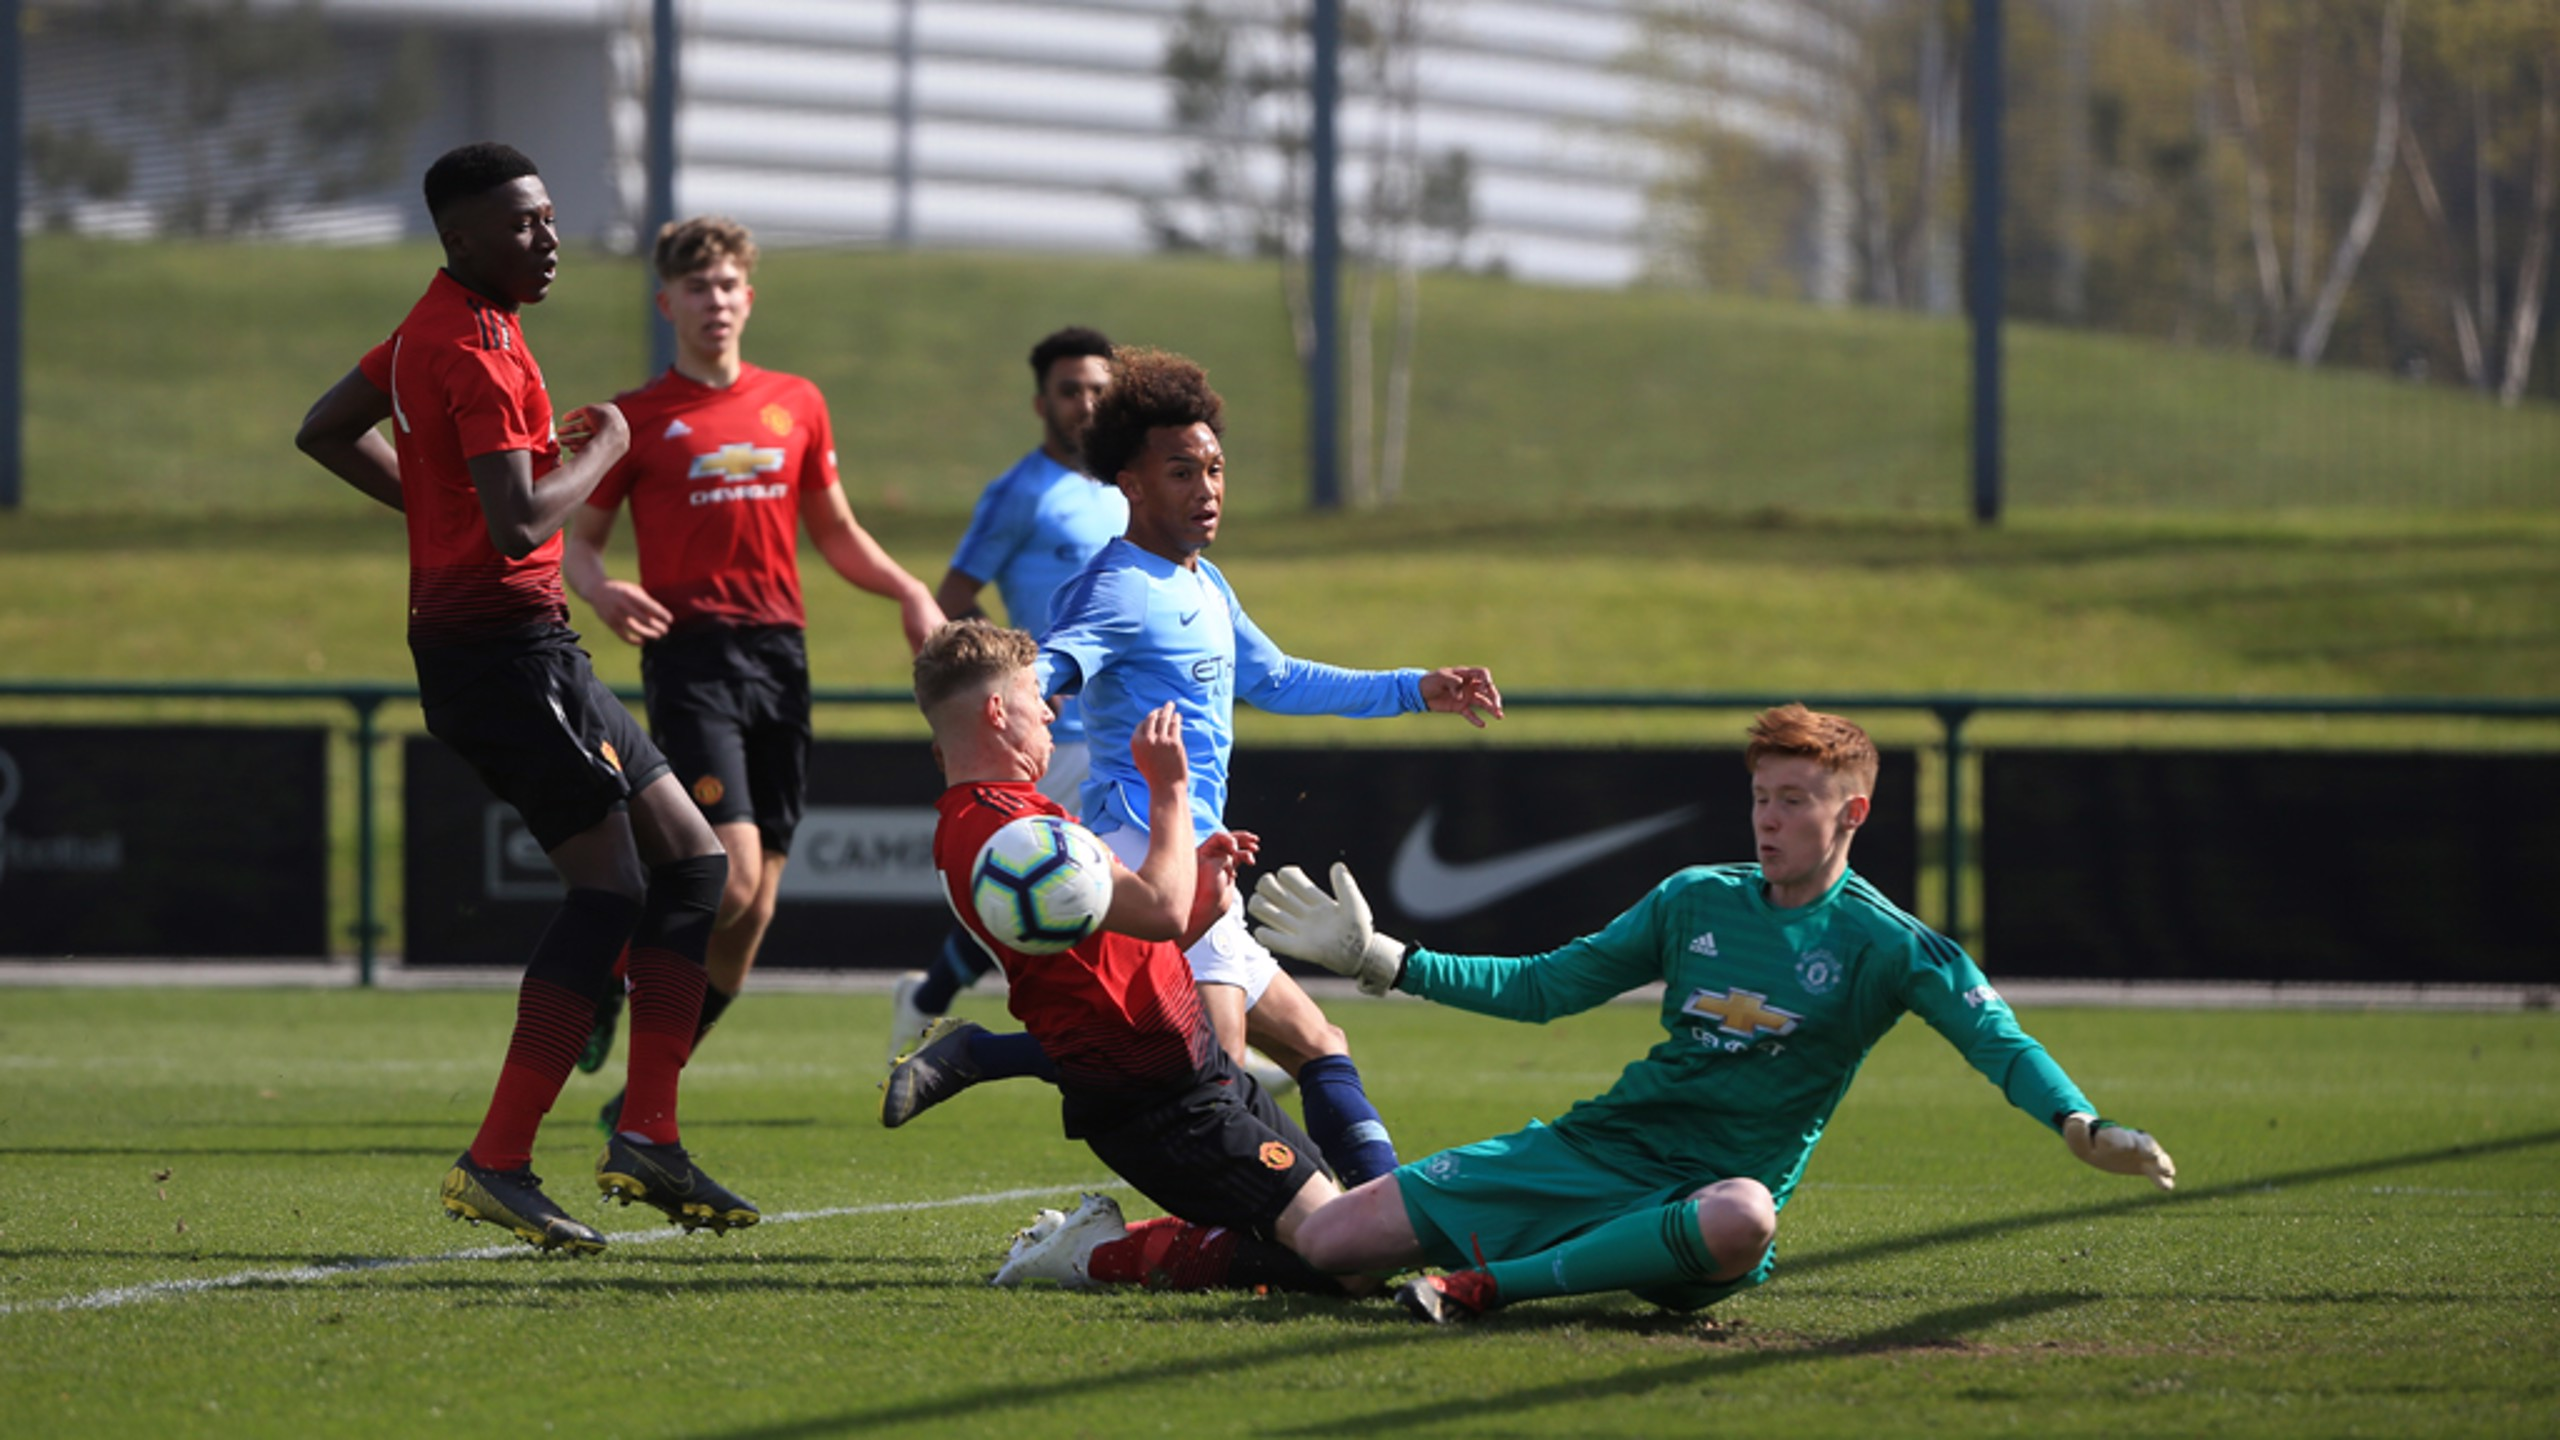 DERBY DAY: City faced their local rivals in the U18 Premier League